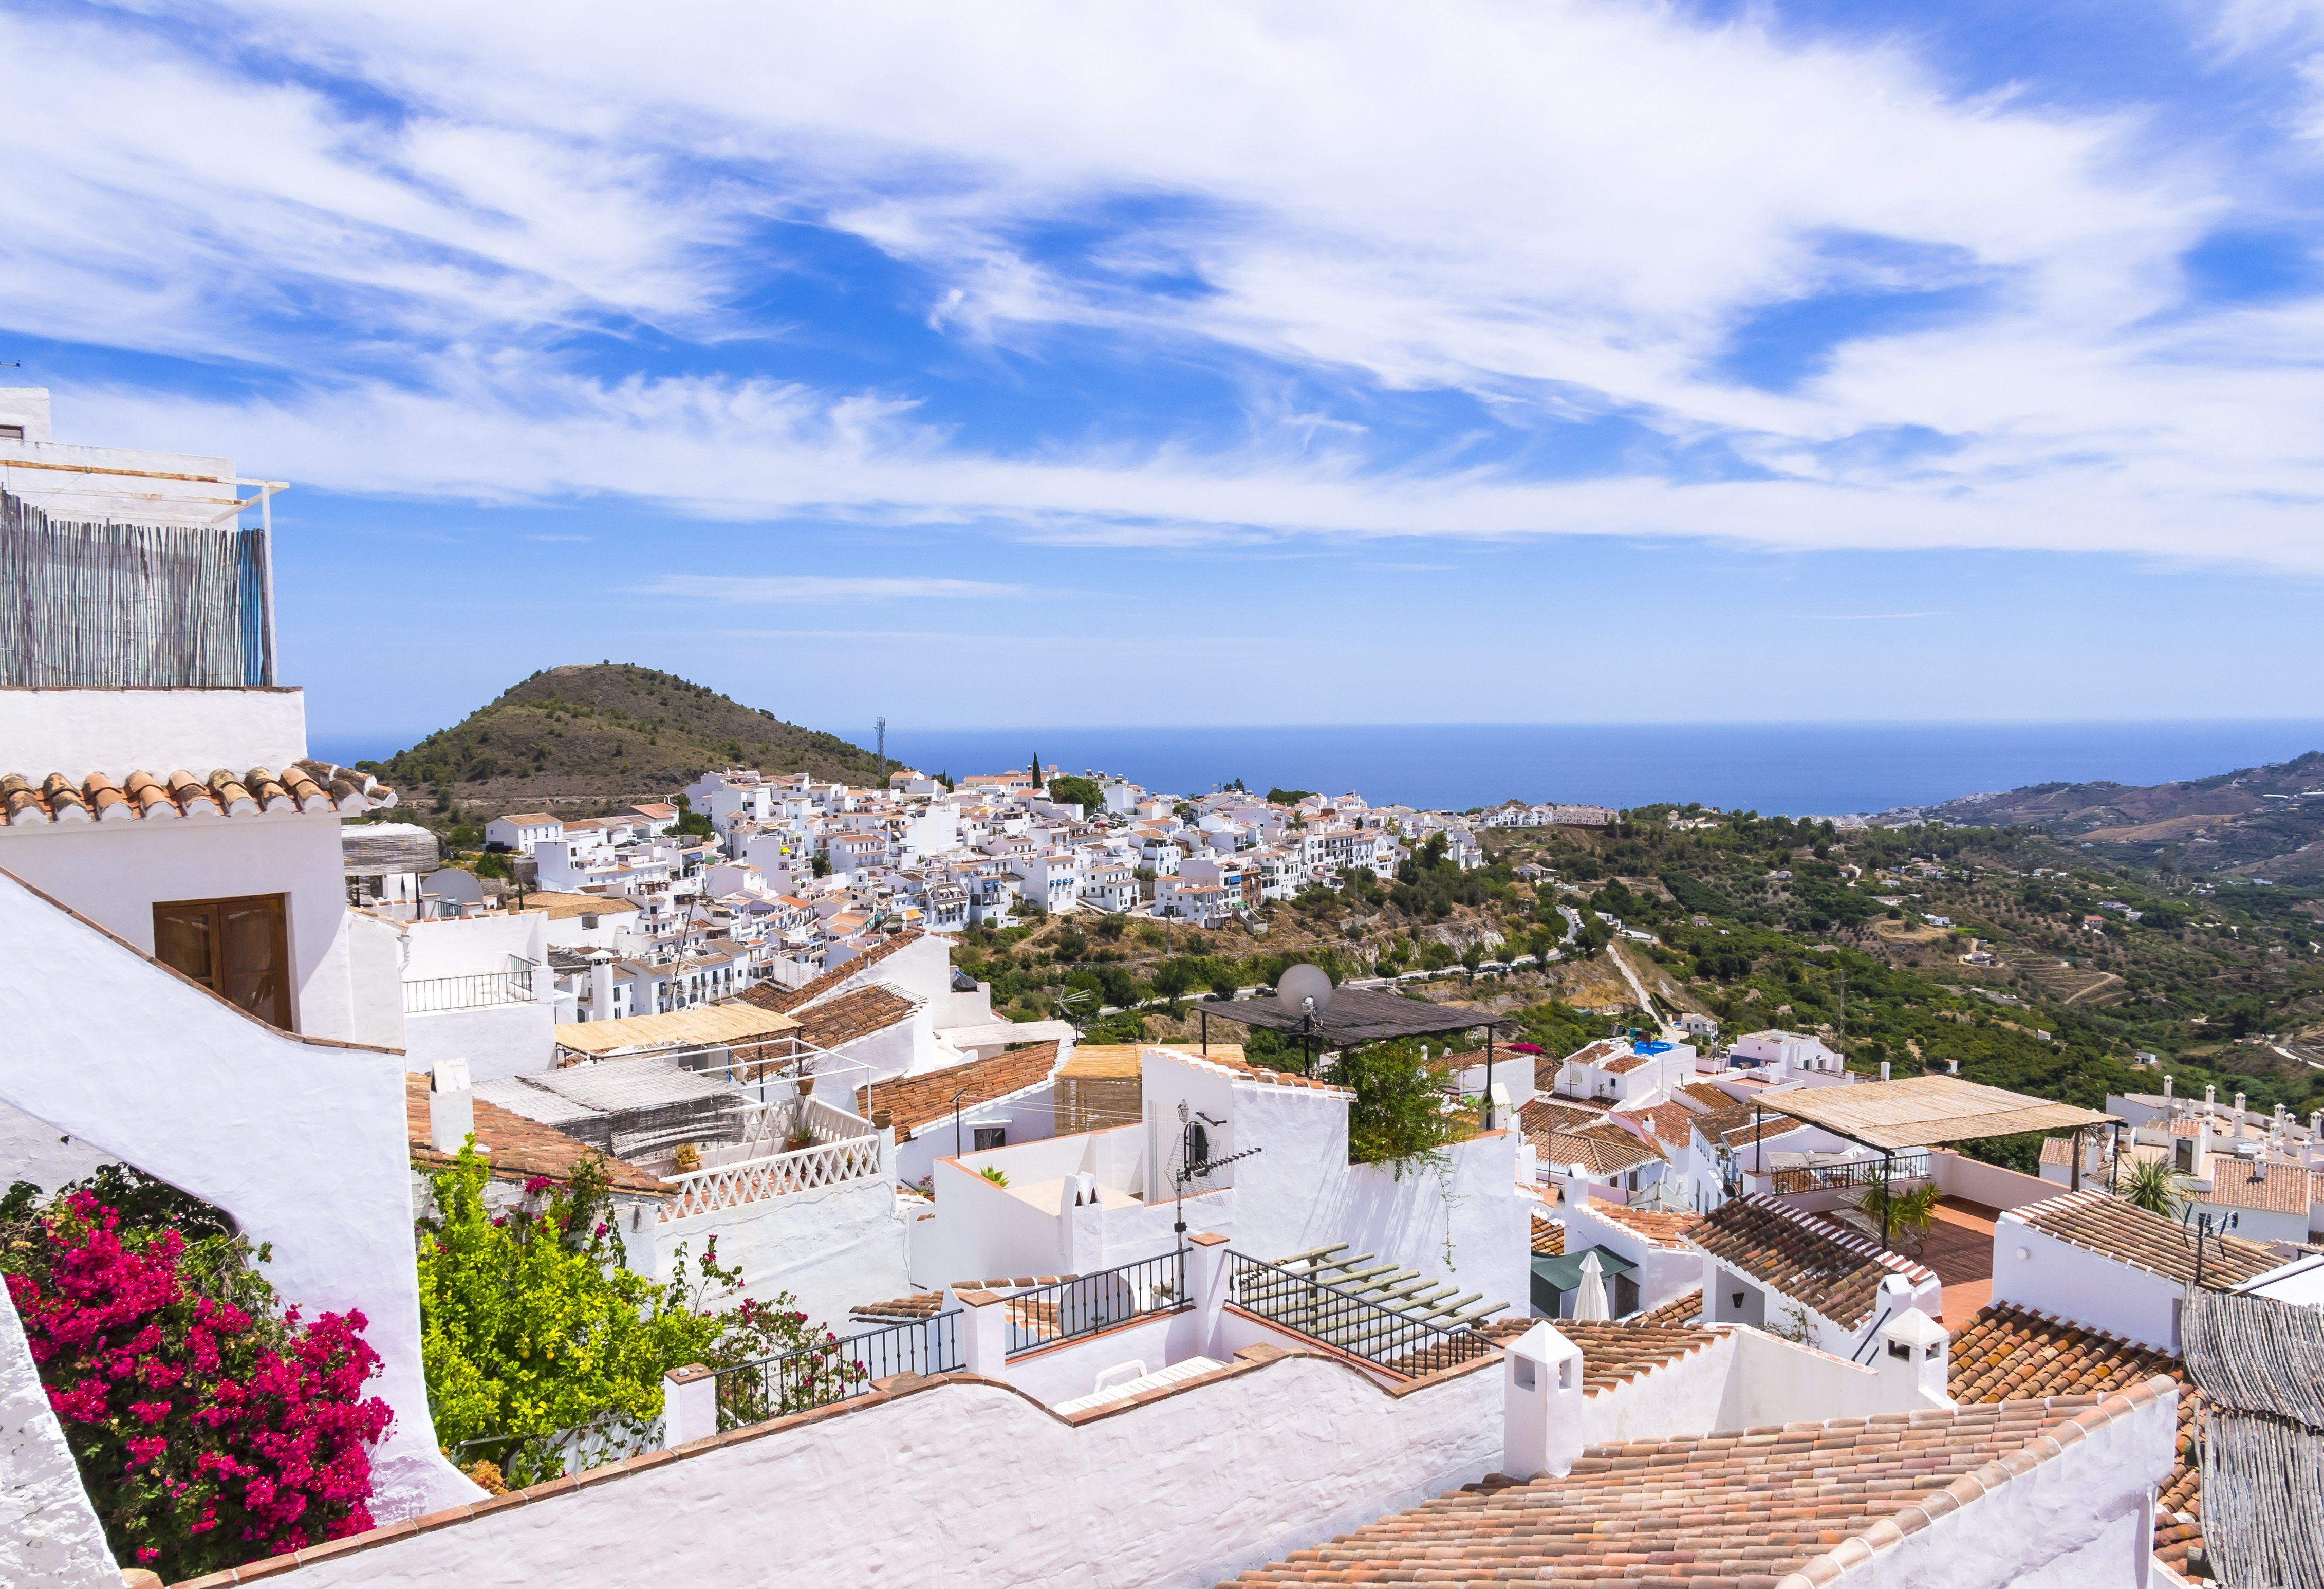 Expats Selling Their Spanish Property in Record Numbers